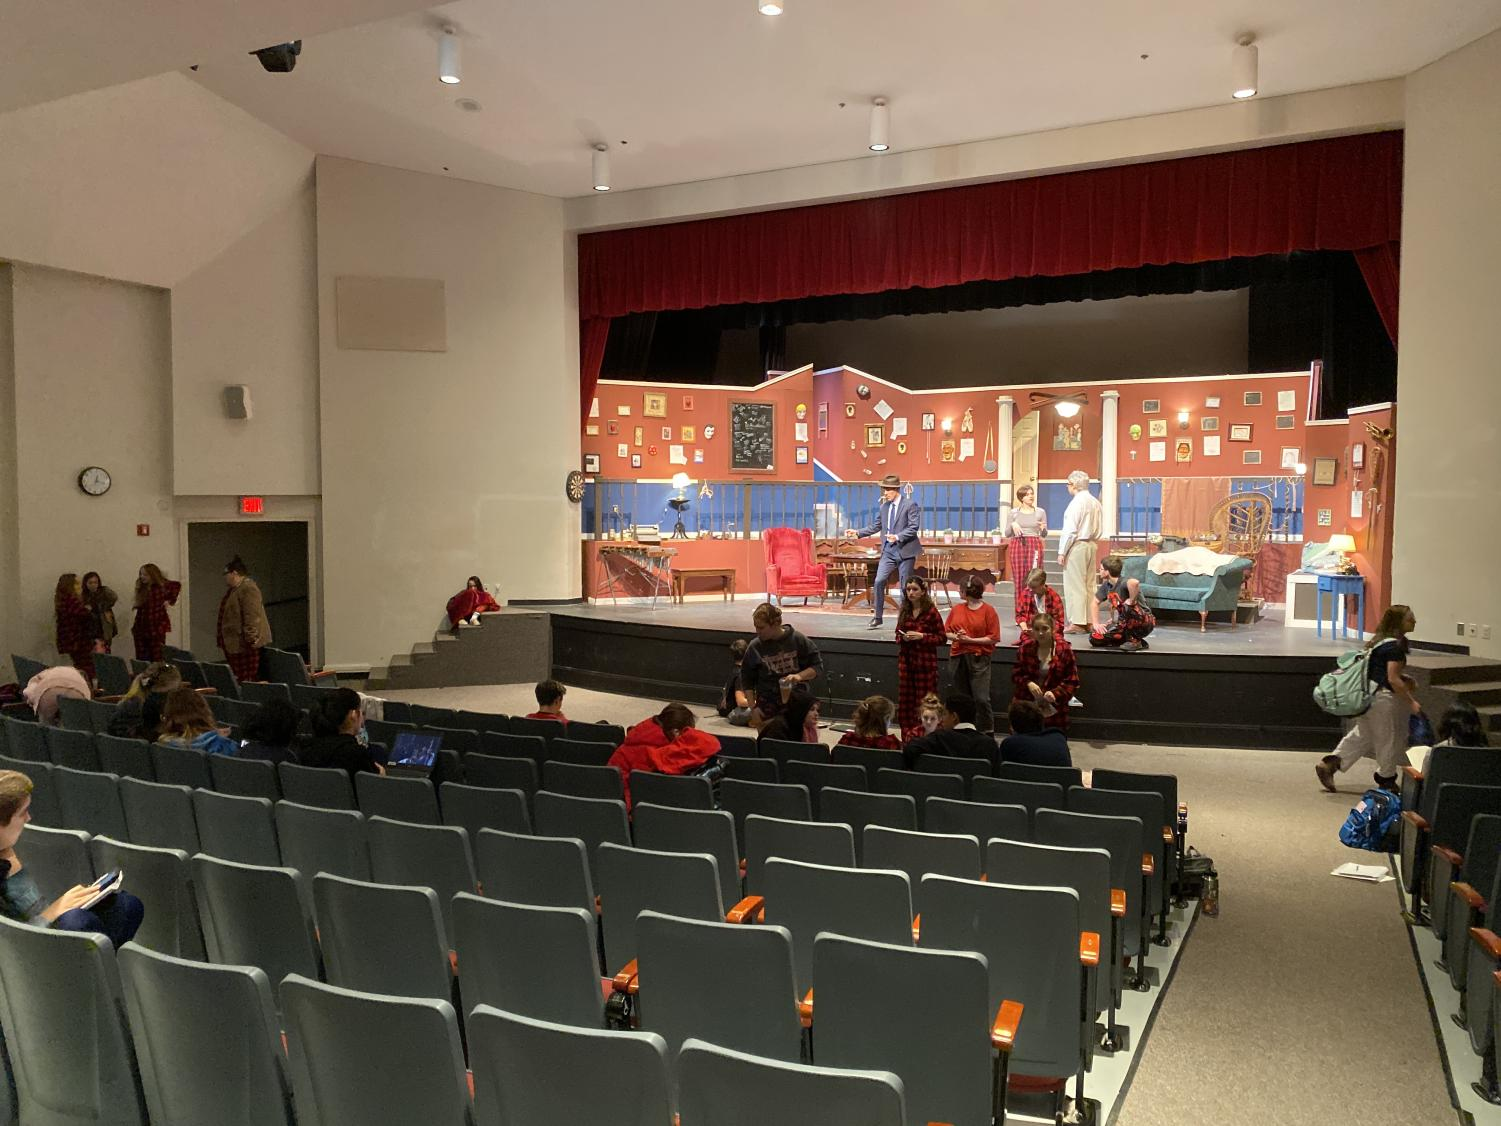 The production team readies for the show's preview on Wednesday. Even for a smaller performance, they need to make sure everything is working properly for the show to succeed.